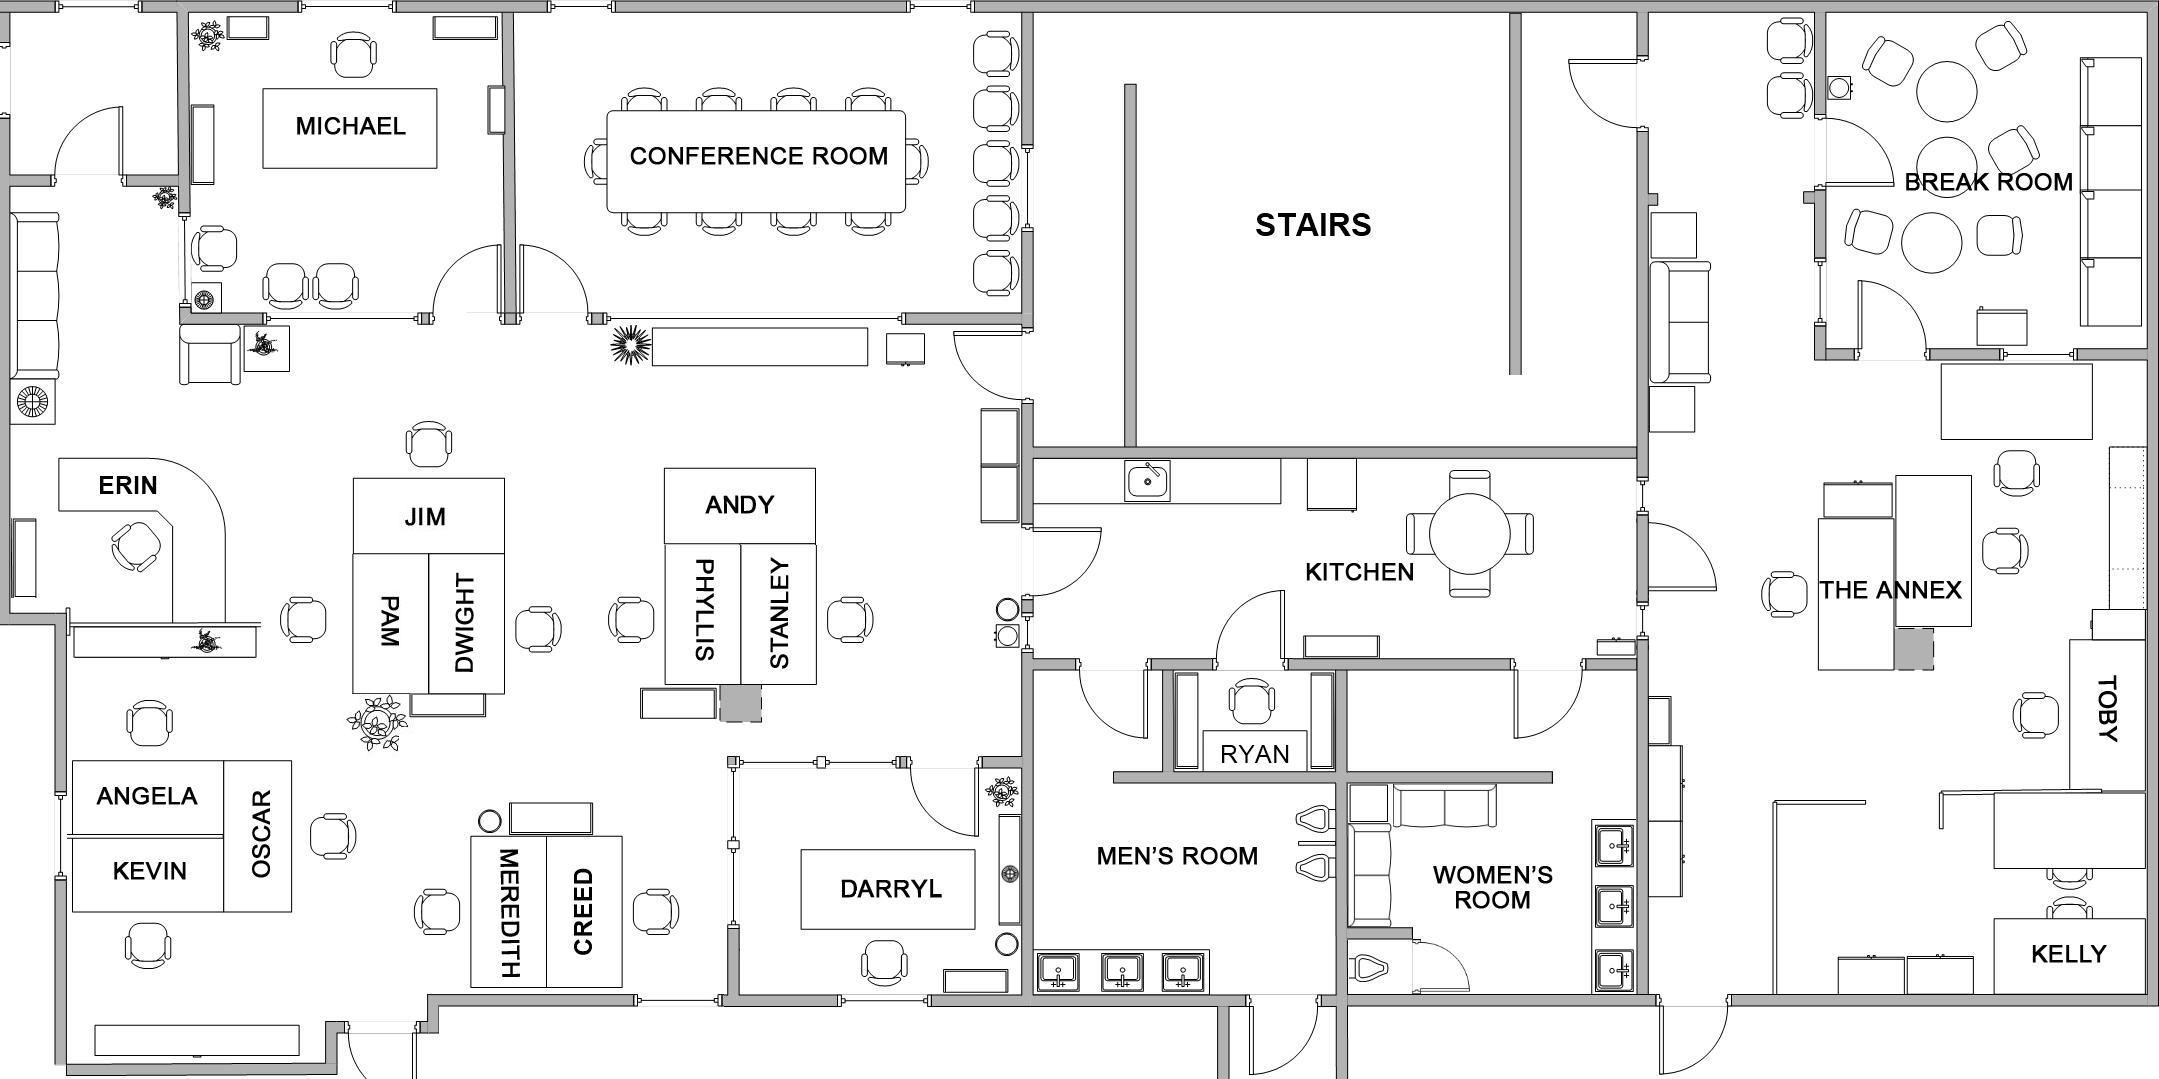 The Dunder Mifflin floor plan